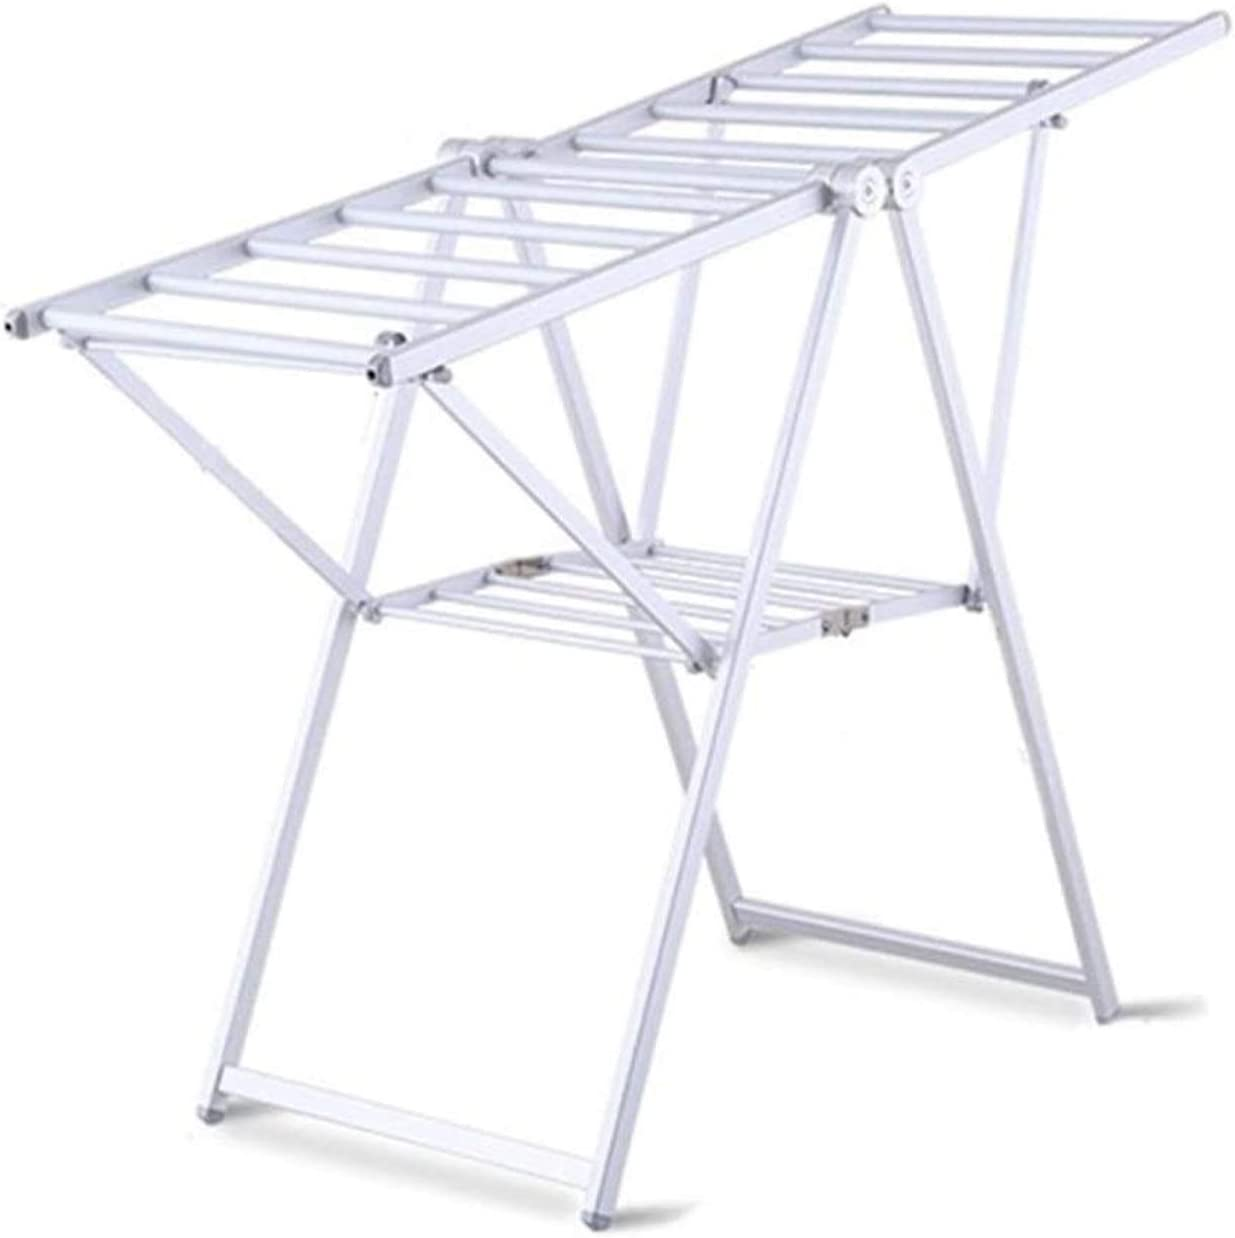 Clothes Drying Rack Clothing wholesale Max 73% OFF Dryin Storage Closet Home